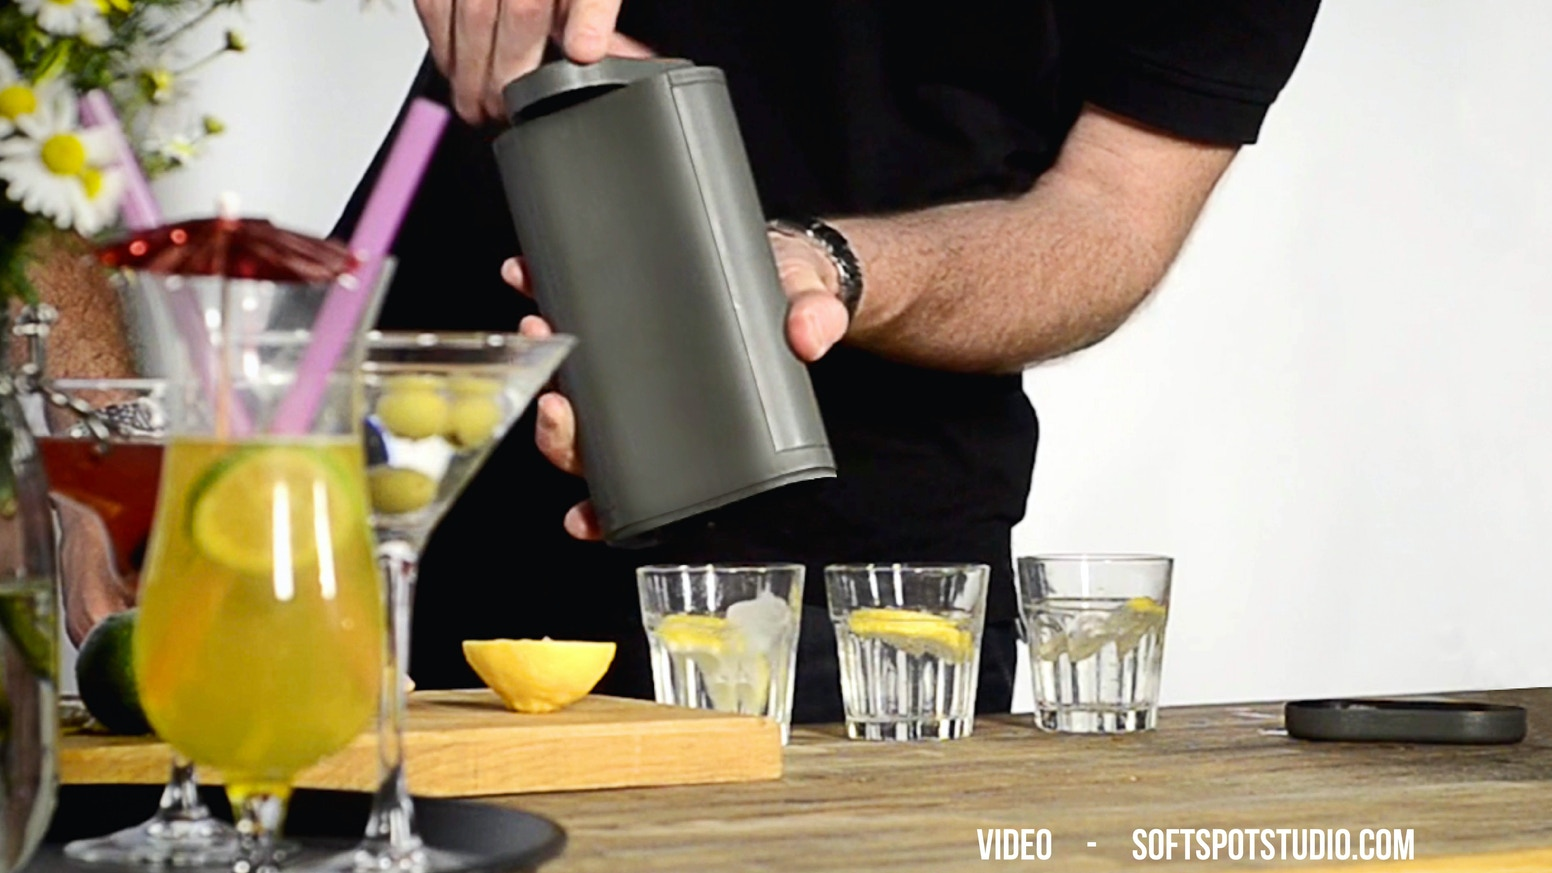 Make ice cubes the 21st Century way – fill with water, freeze and rotate the lid to dispense perfect ice cubes with no mess.